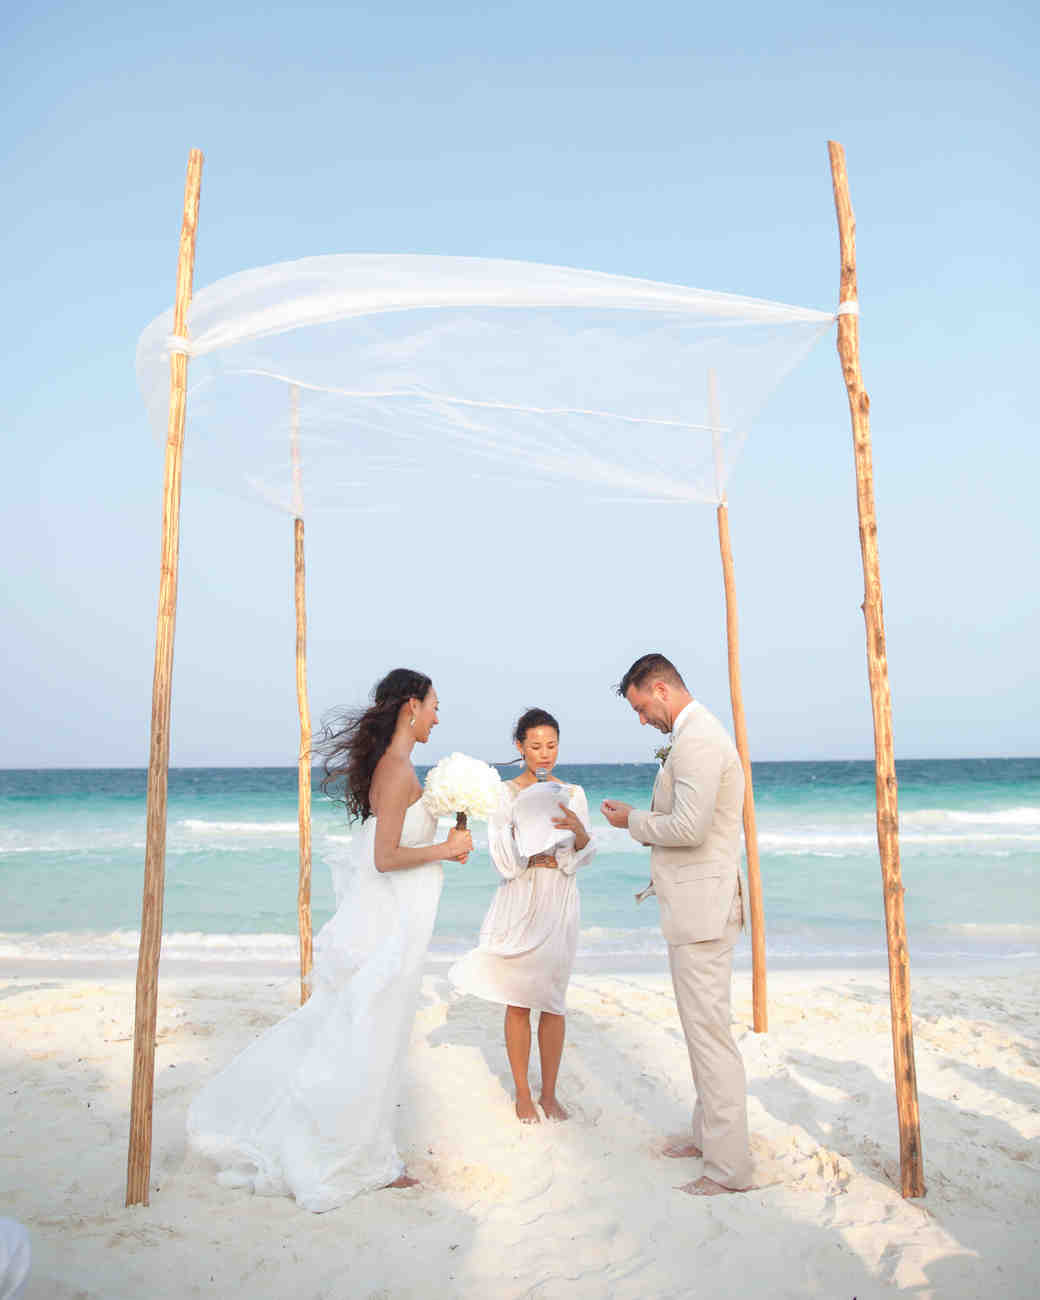 Outdoor Wedding Pictures: 16 Things You Need To Know To Pull Off An Outdoor Wedding